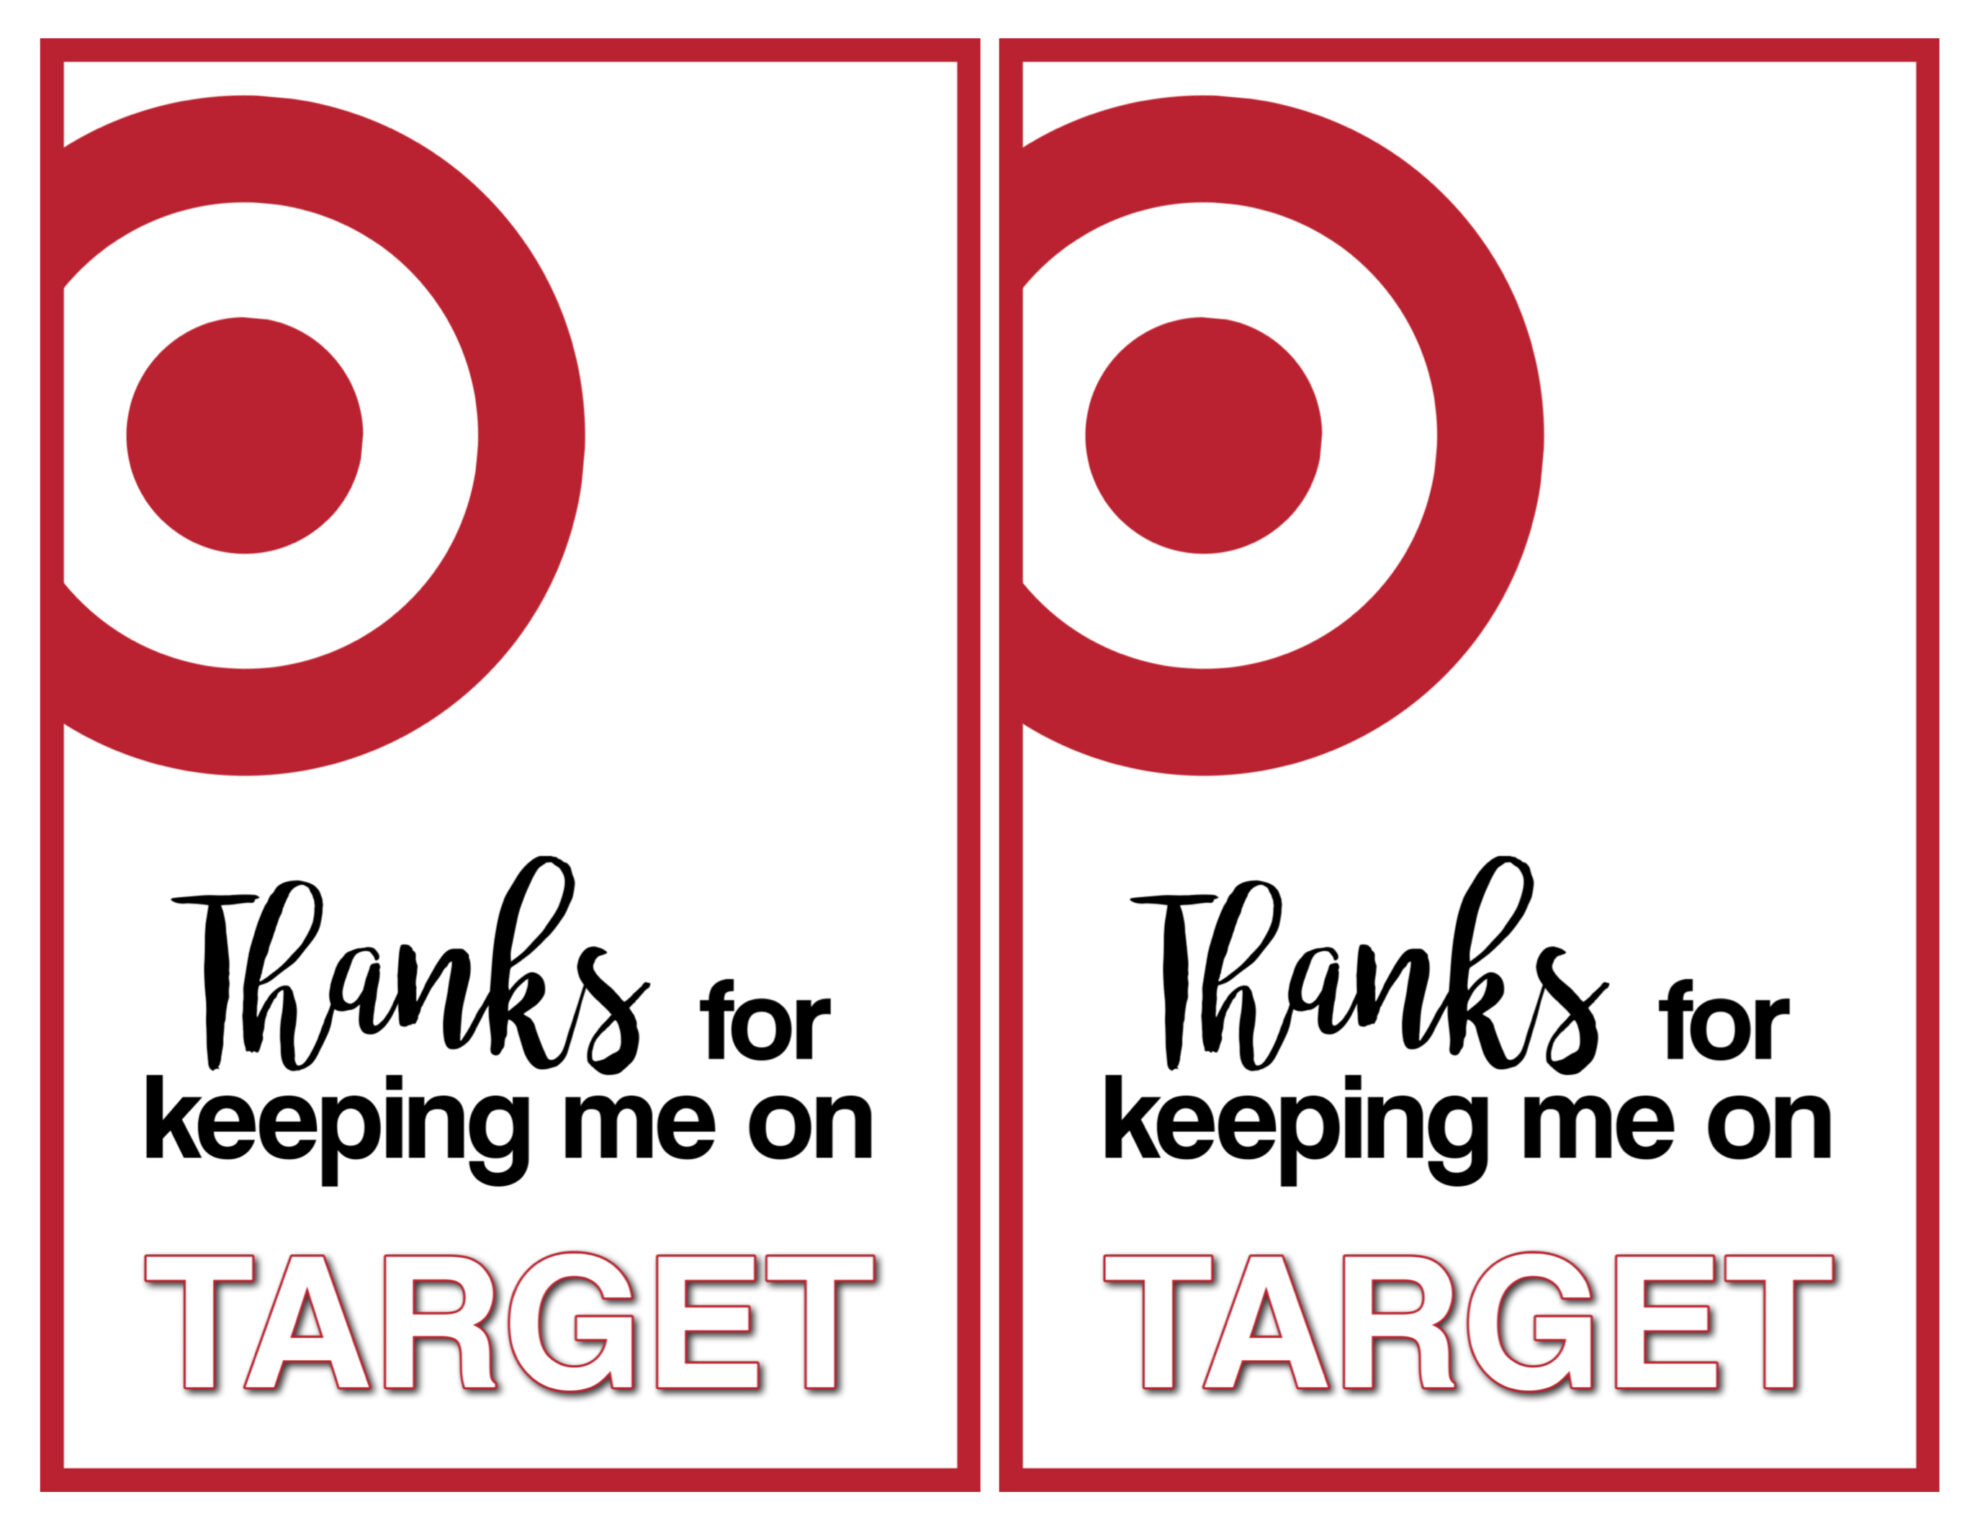 Target Thank You Cards Free Printable - Paper Trail Design